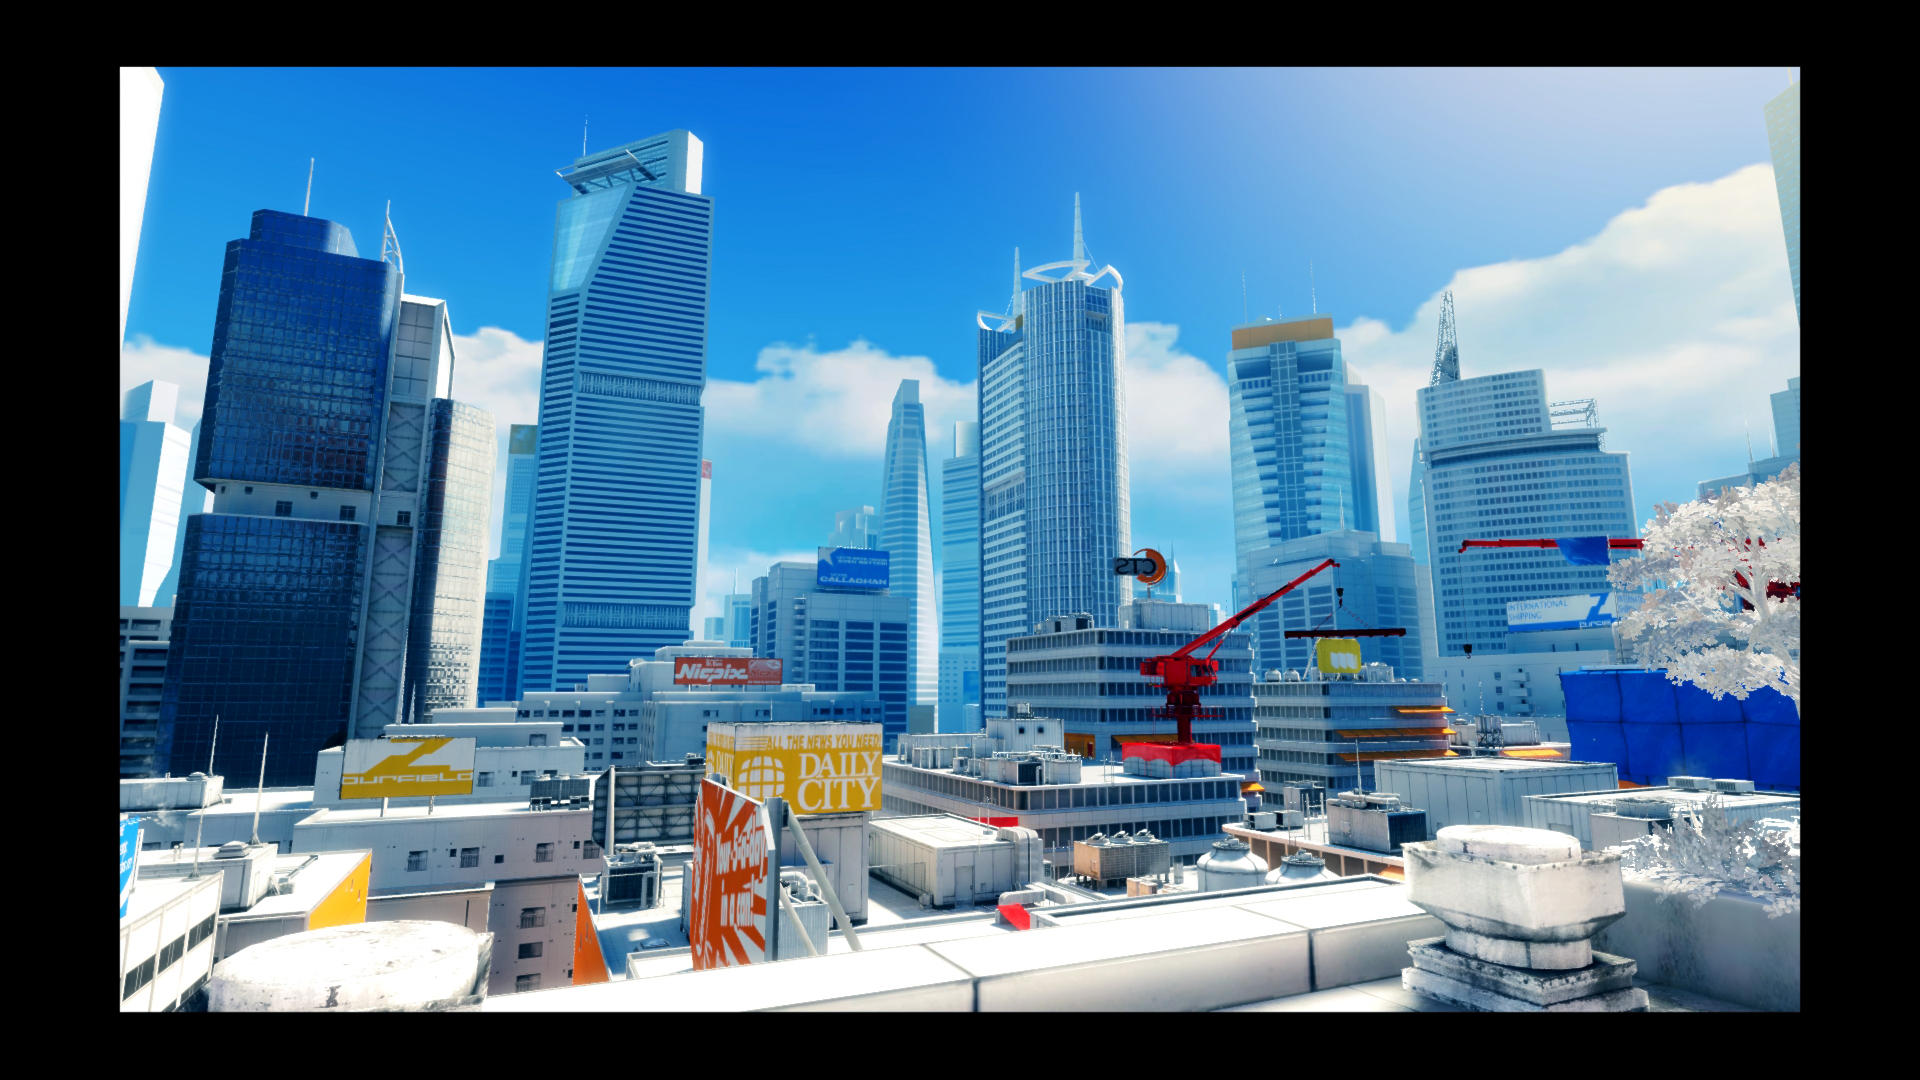 Mirrors Edge 3 Wallpaper Pack by *SxyfrG on deviantART